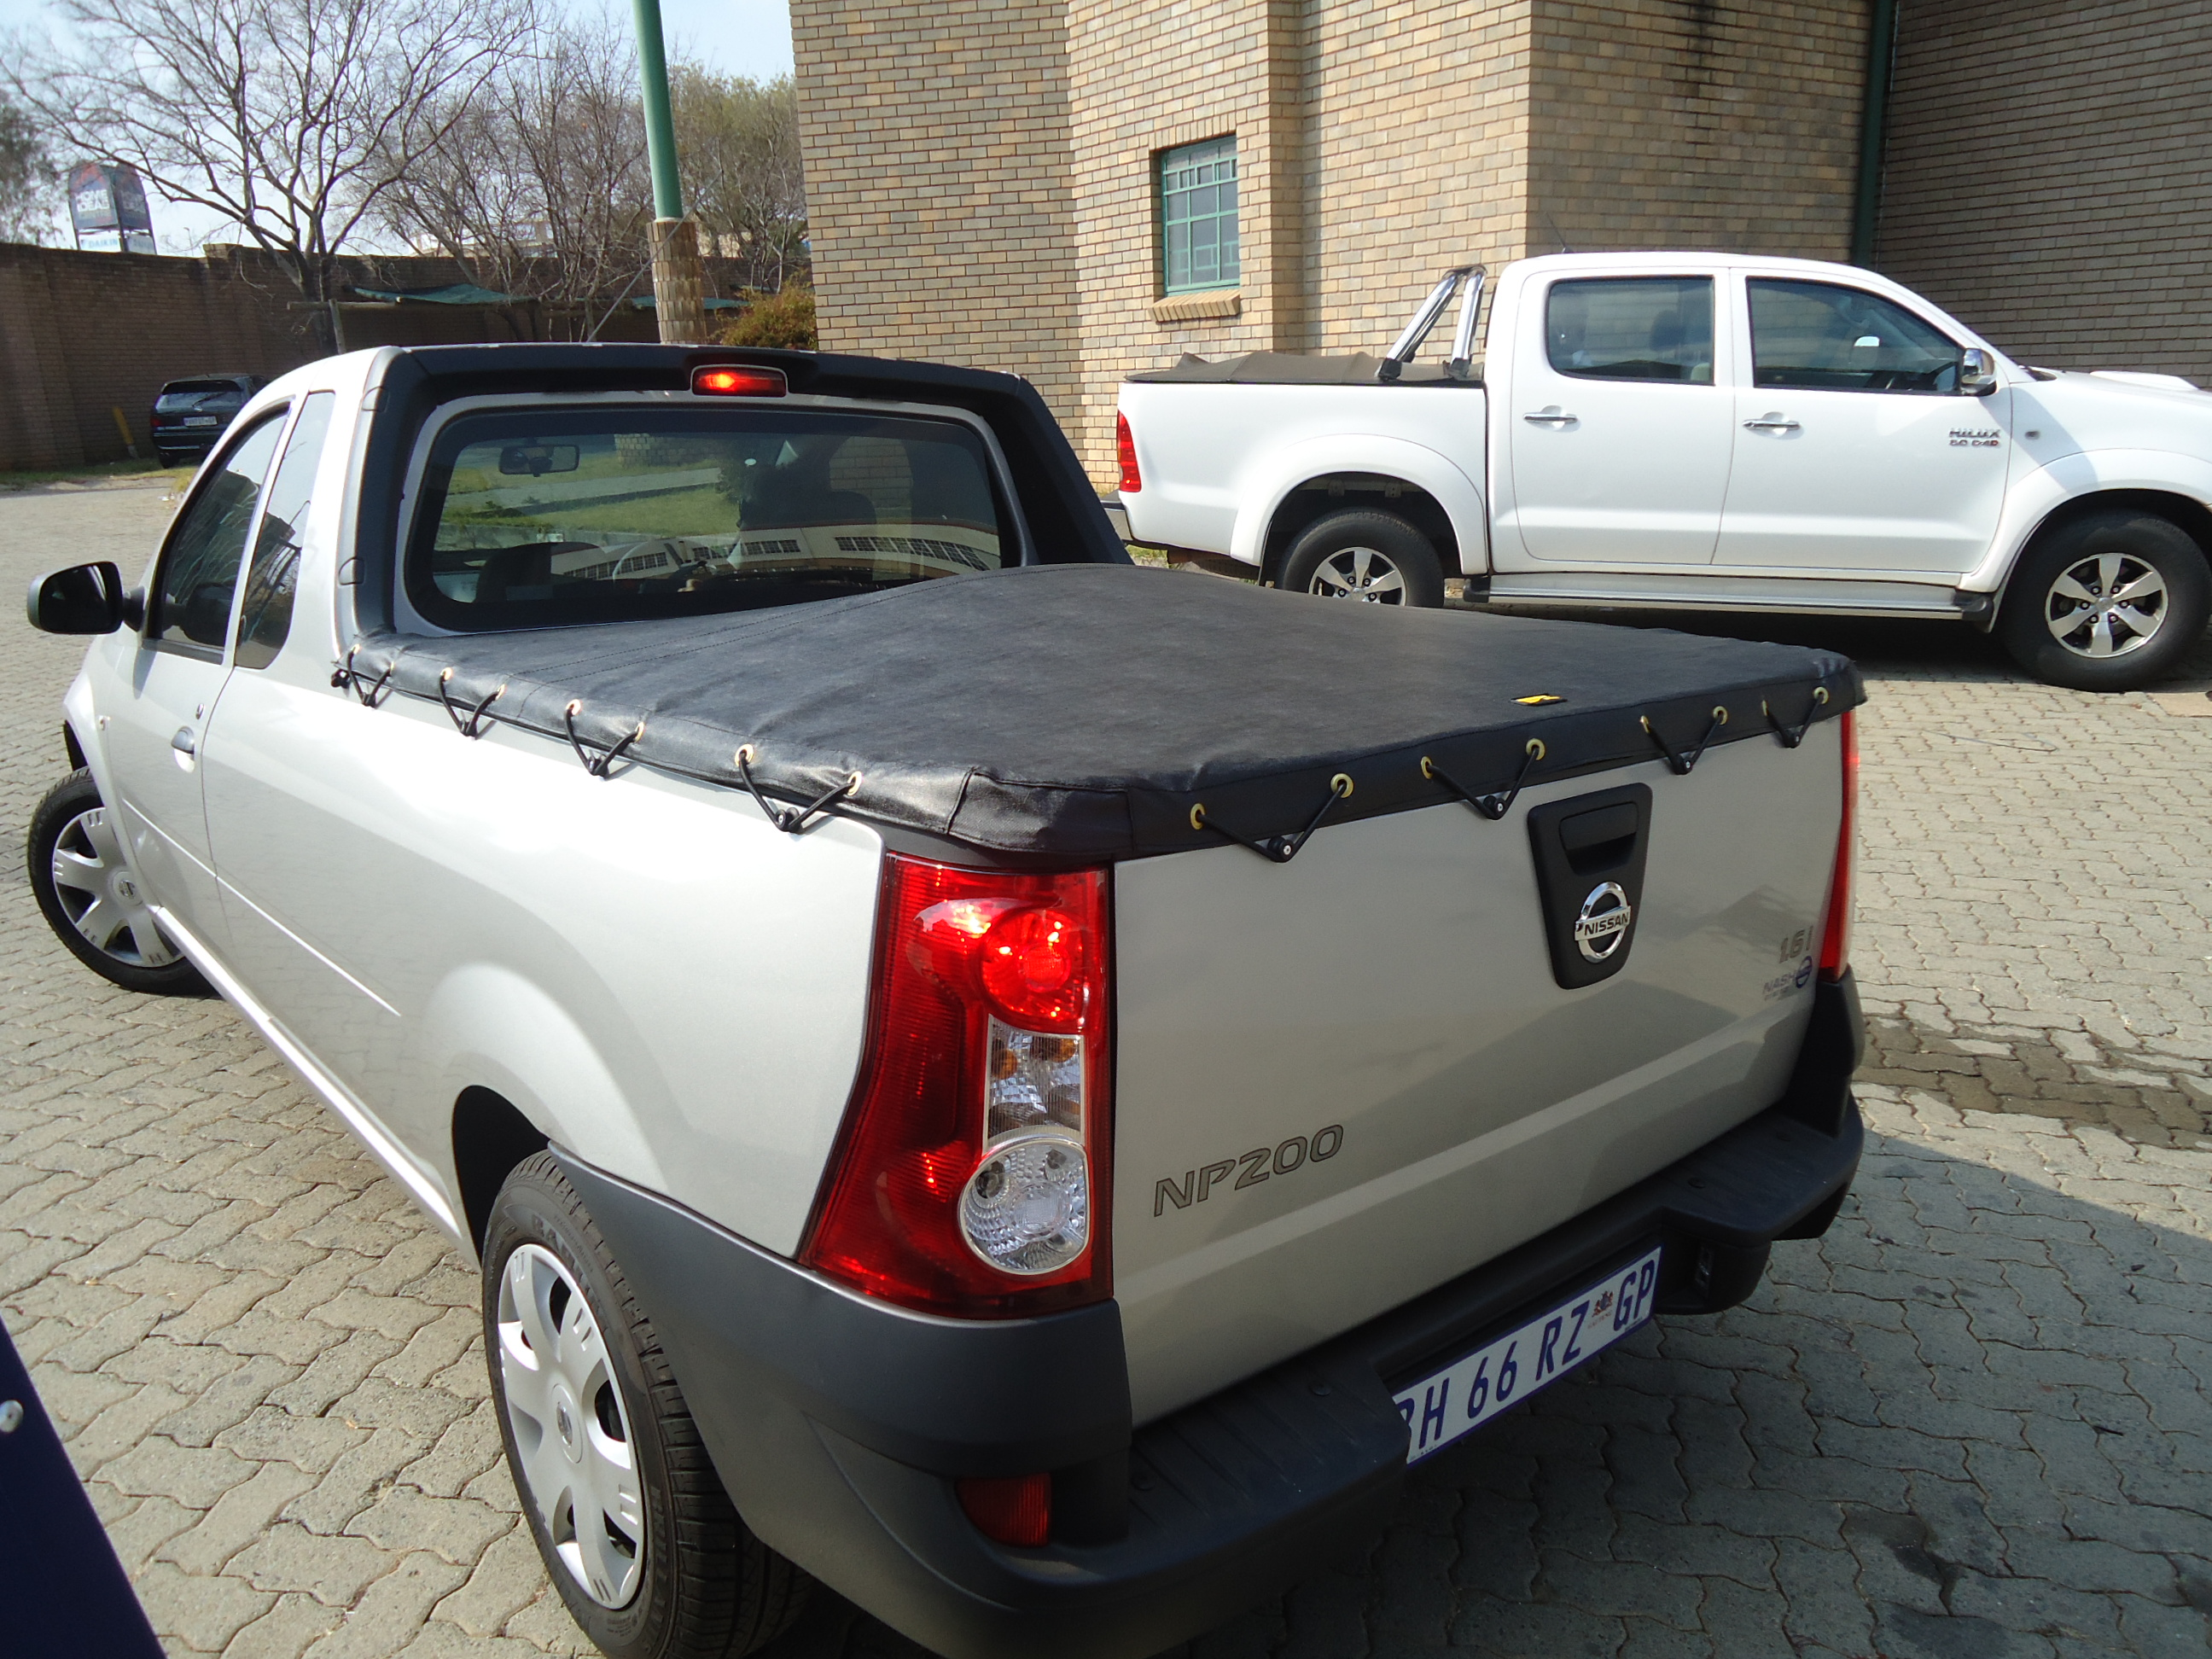 ELASTICATED ROPE TONNEAU COVER NISSAN NP200